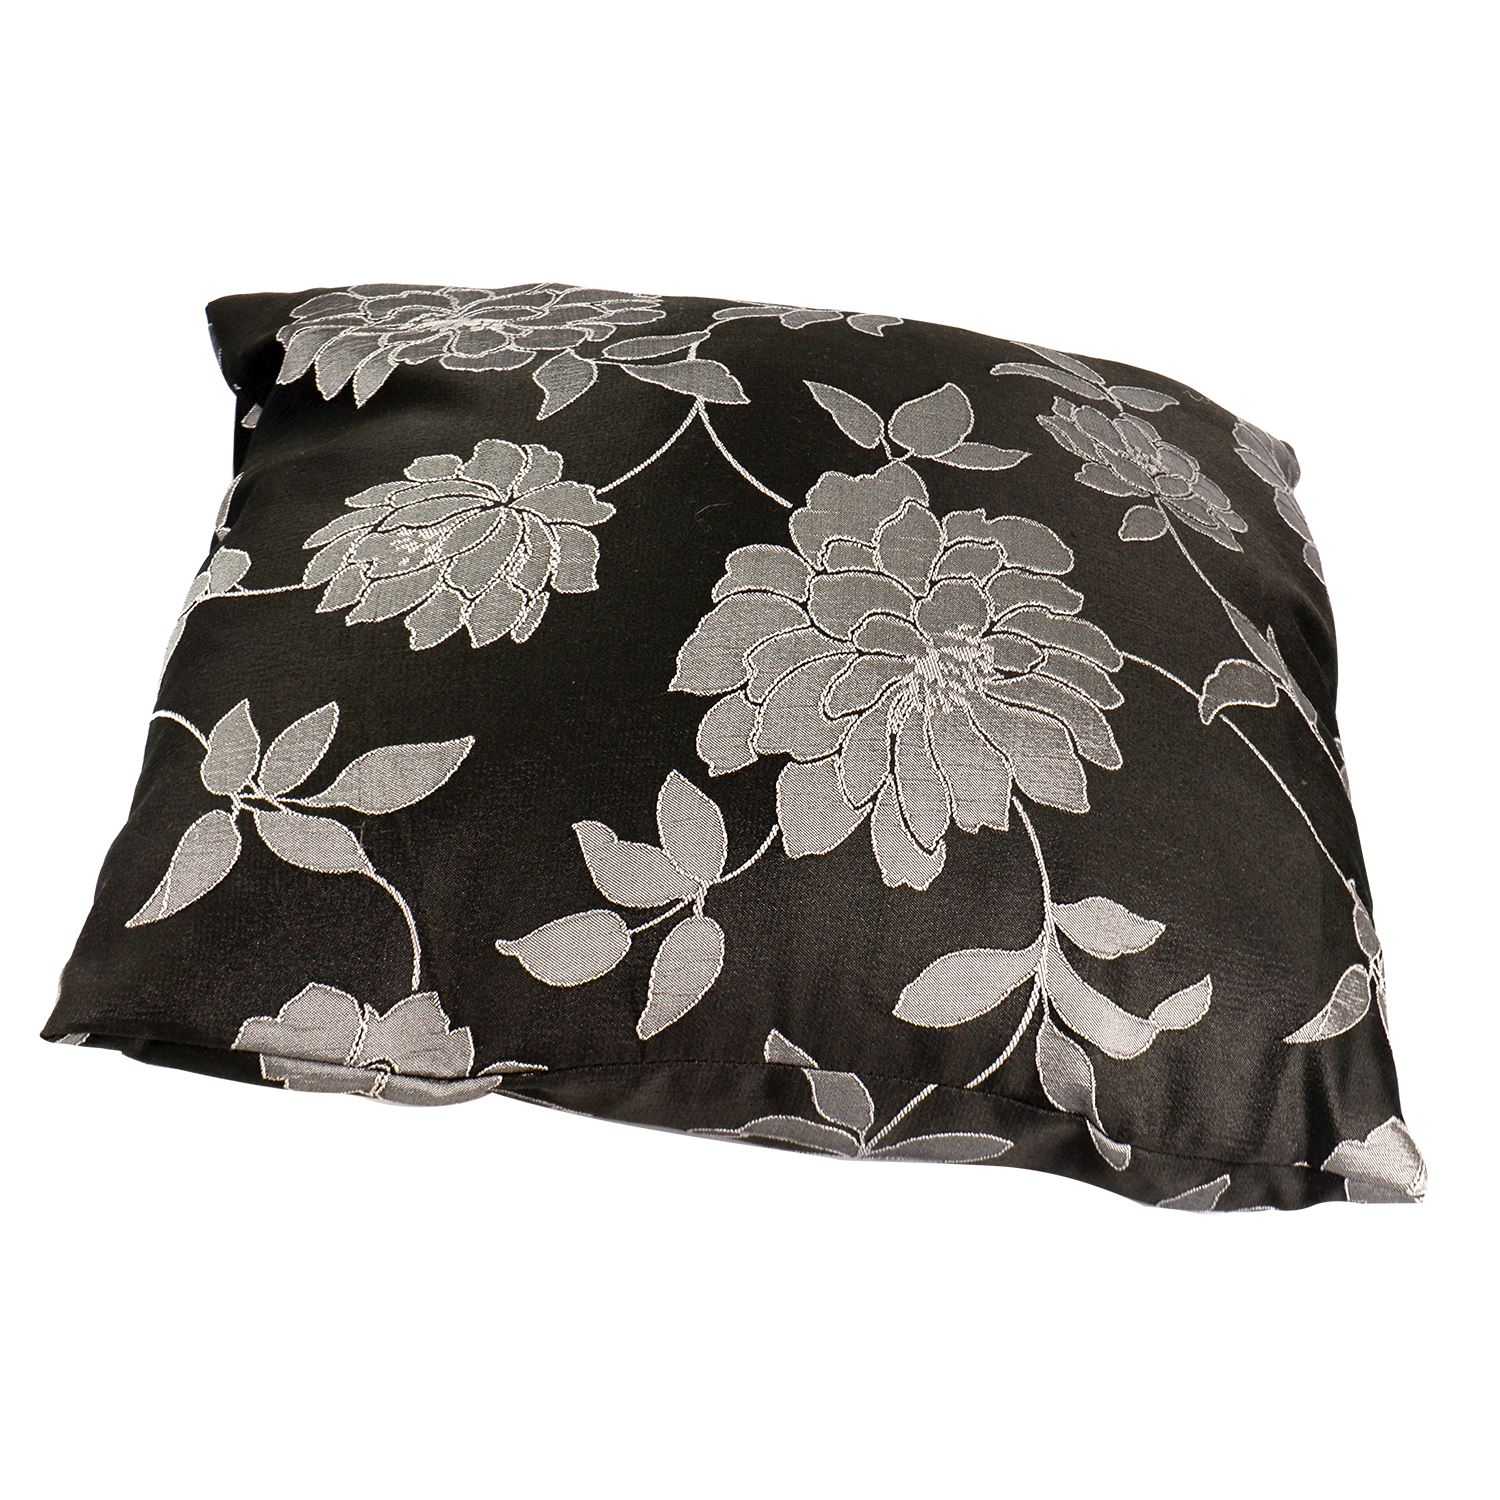 Chenille Throw Pillow Covers : 16x16